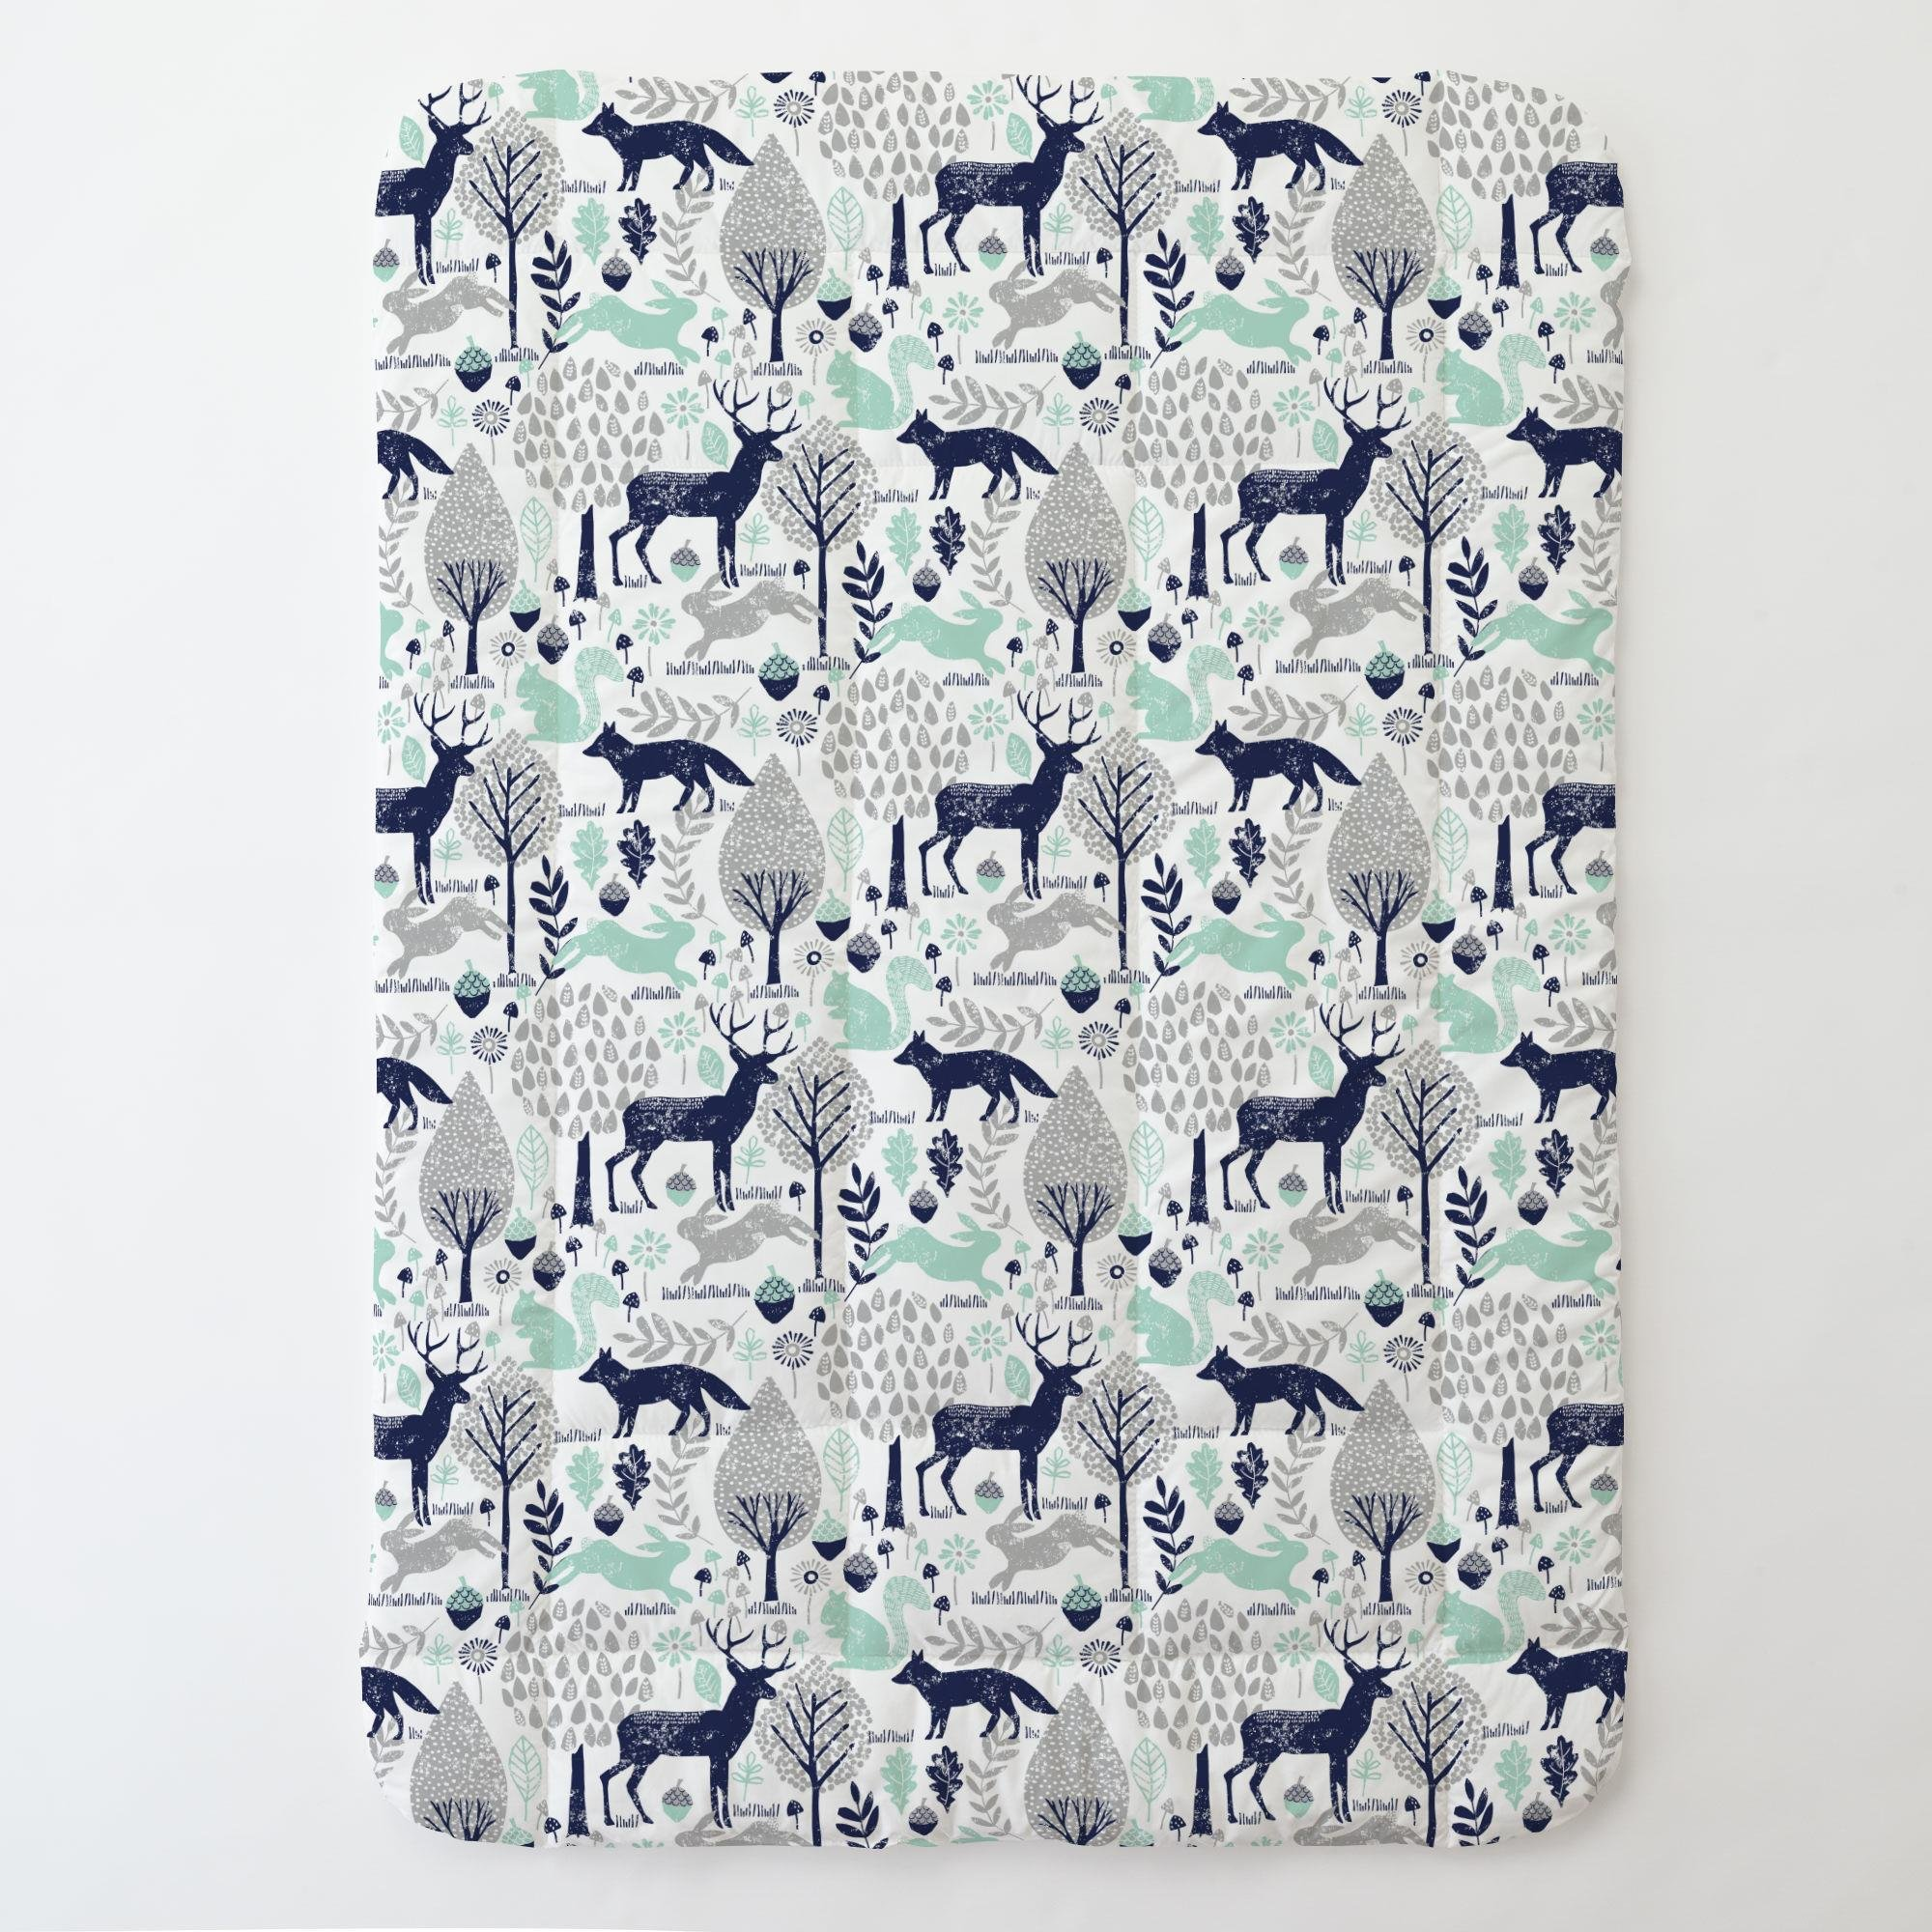 Carousel Designs Navy and Mint Woodland Animals Toddler Bed Comforter by Carousel Designs (Image #1)